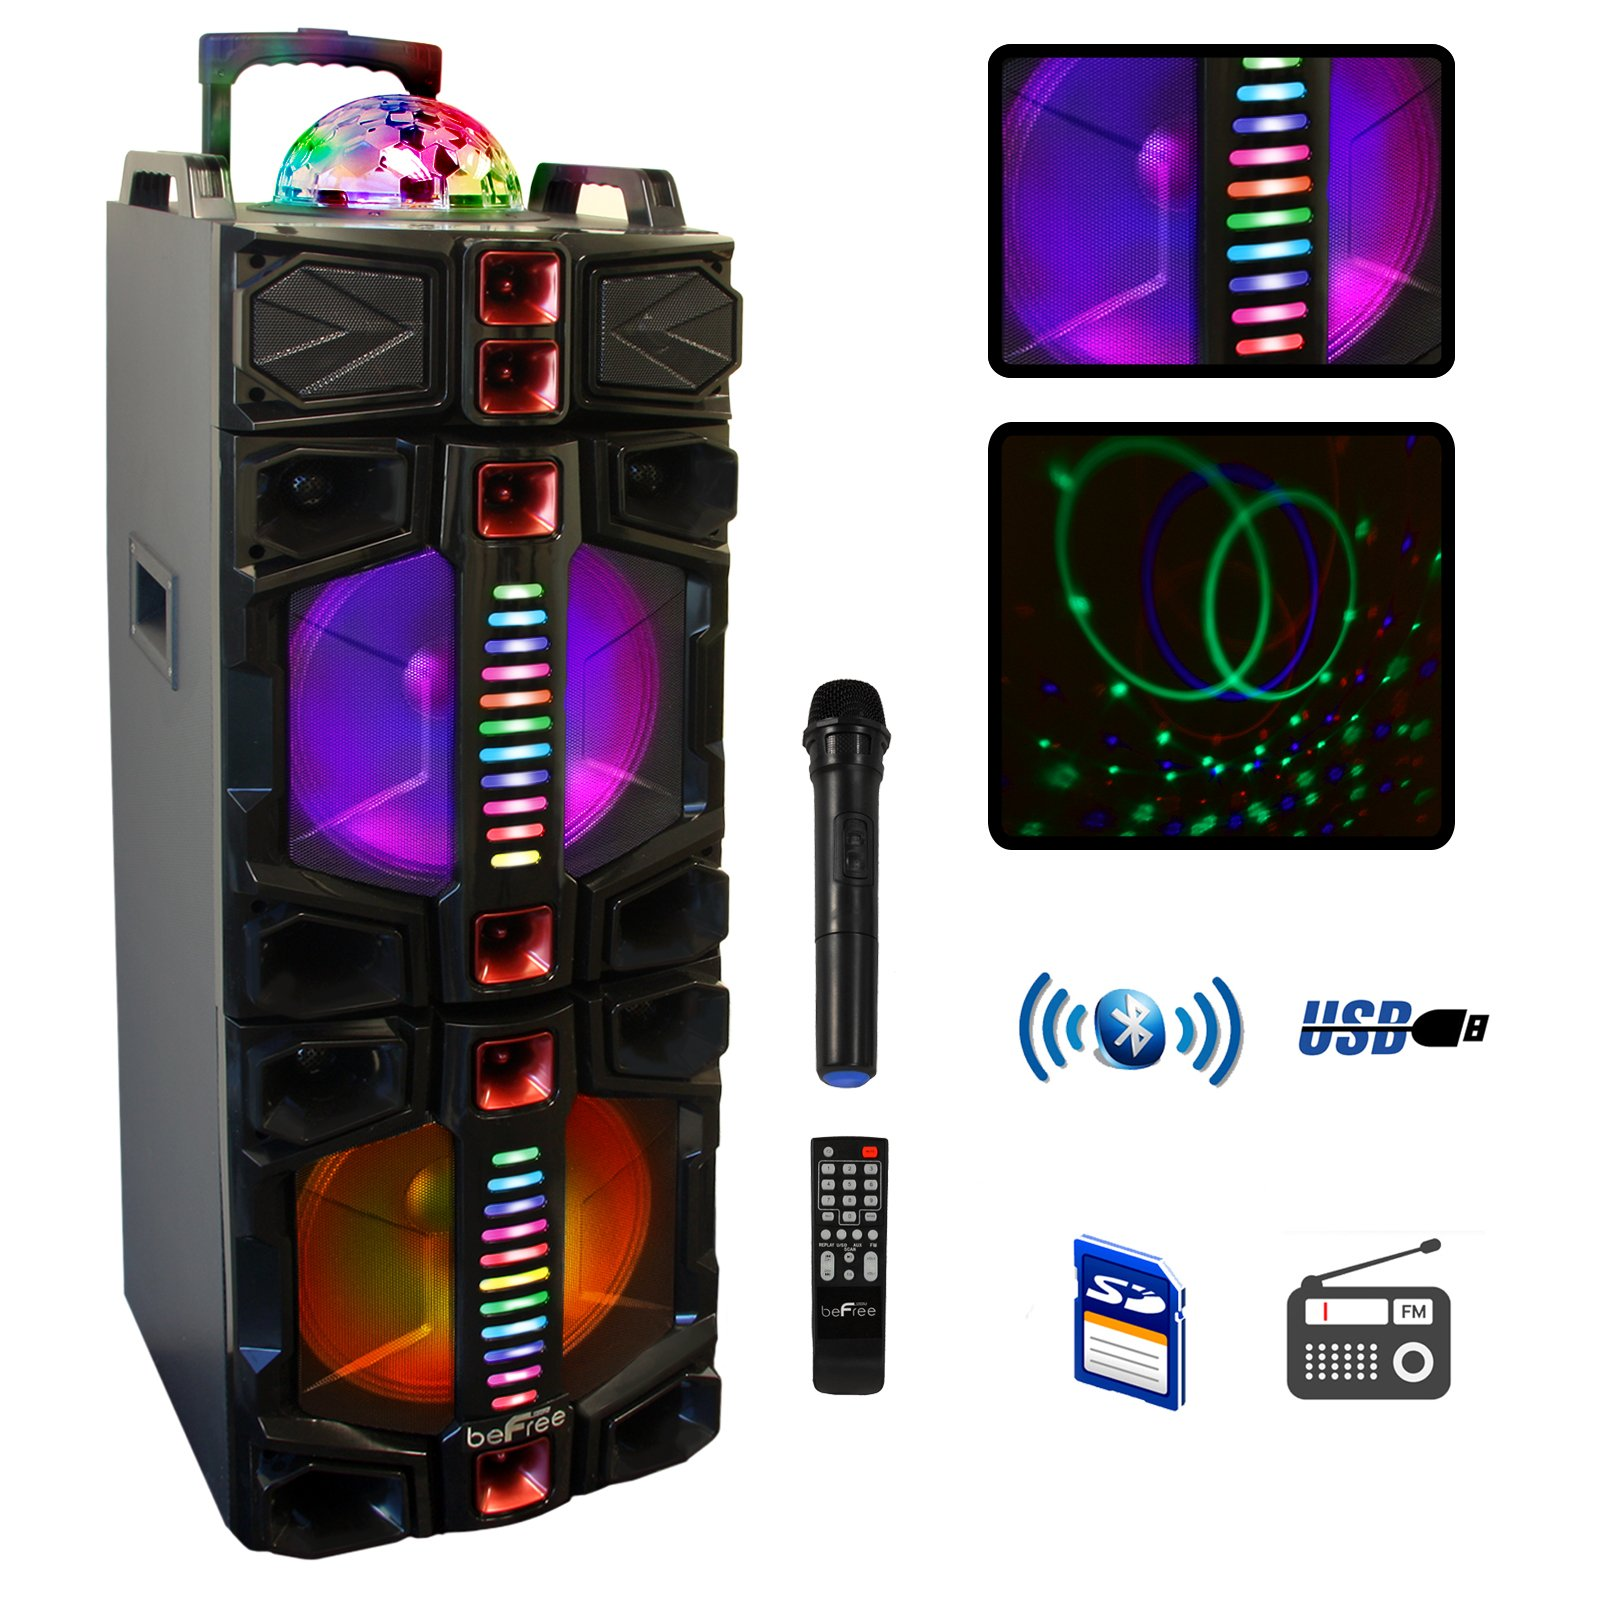 BeFree Sound Dual 12 Inch Subwoofer Bluetooth Portable Party Speaker With LED Lights, USB/ SD Input, Fm Radio, Remote Control And Wireless Microphone